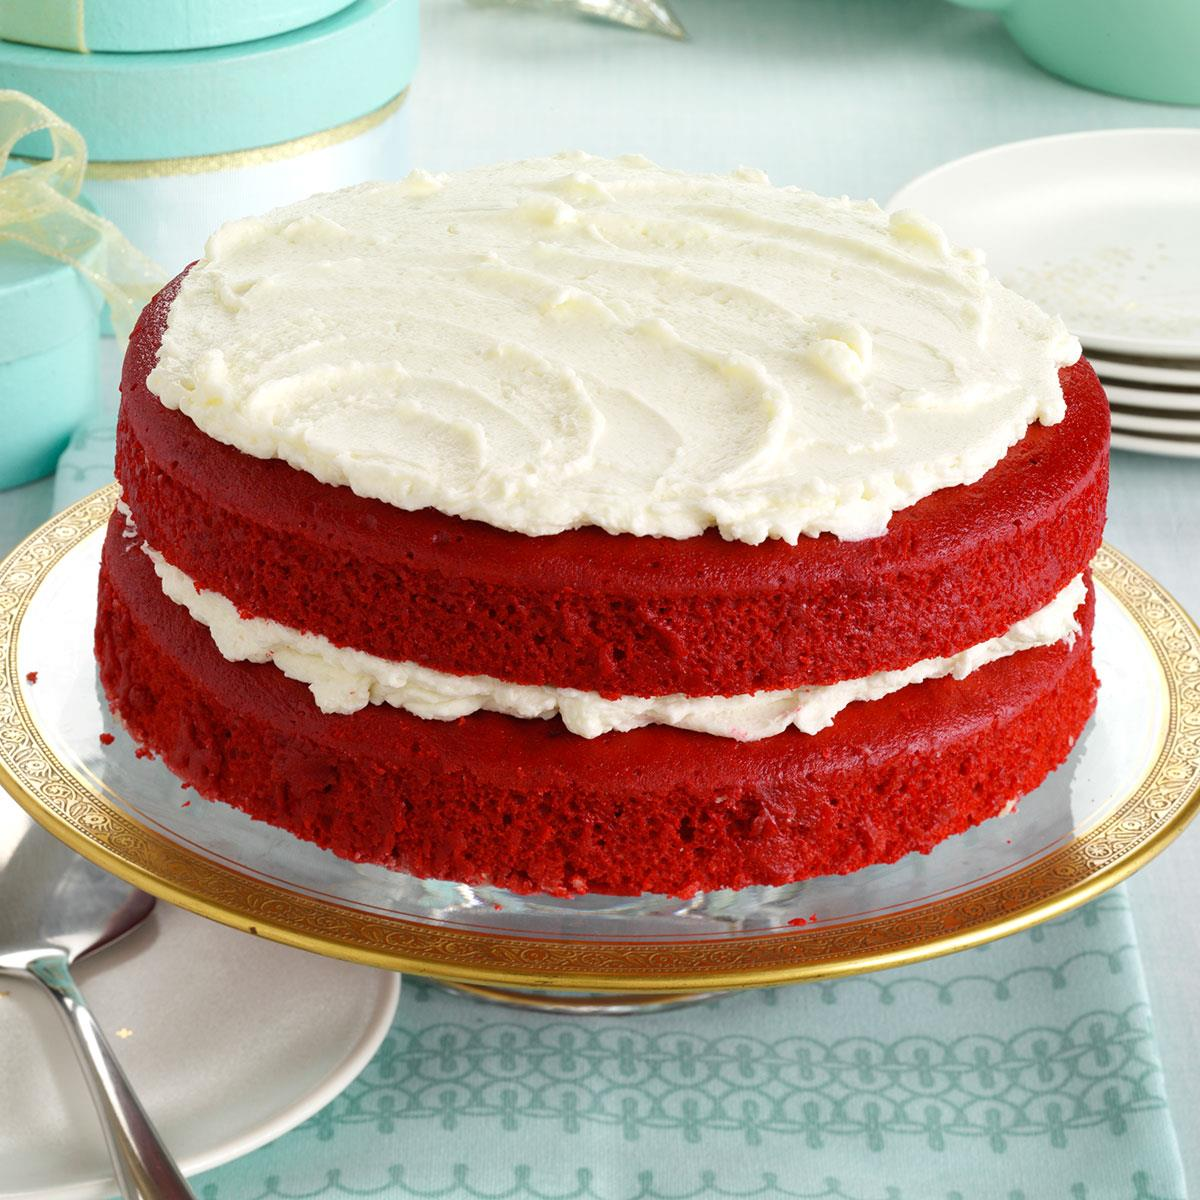 Tremendous Makeover Red Velvet Cake Recipe Taste Of Home Funny Birthday Cards Online Alyptdamsfinfo